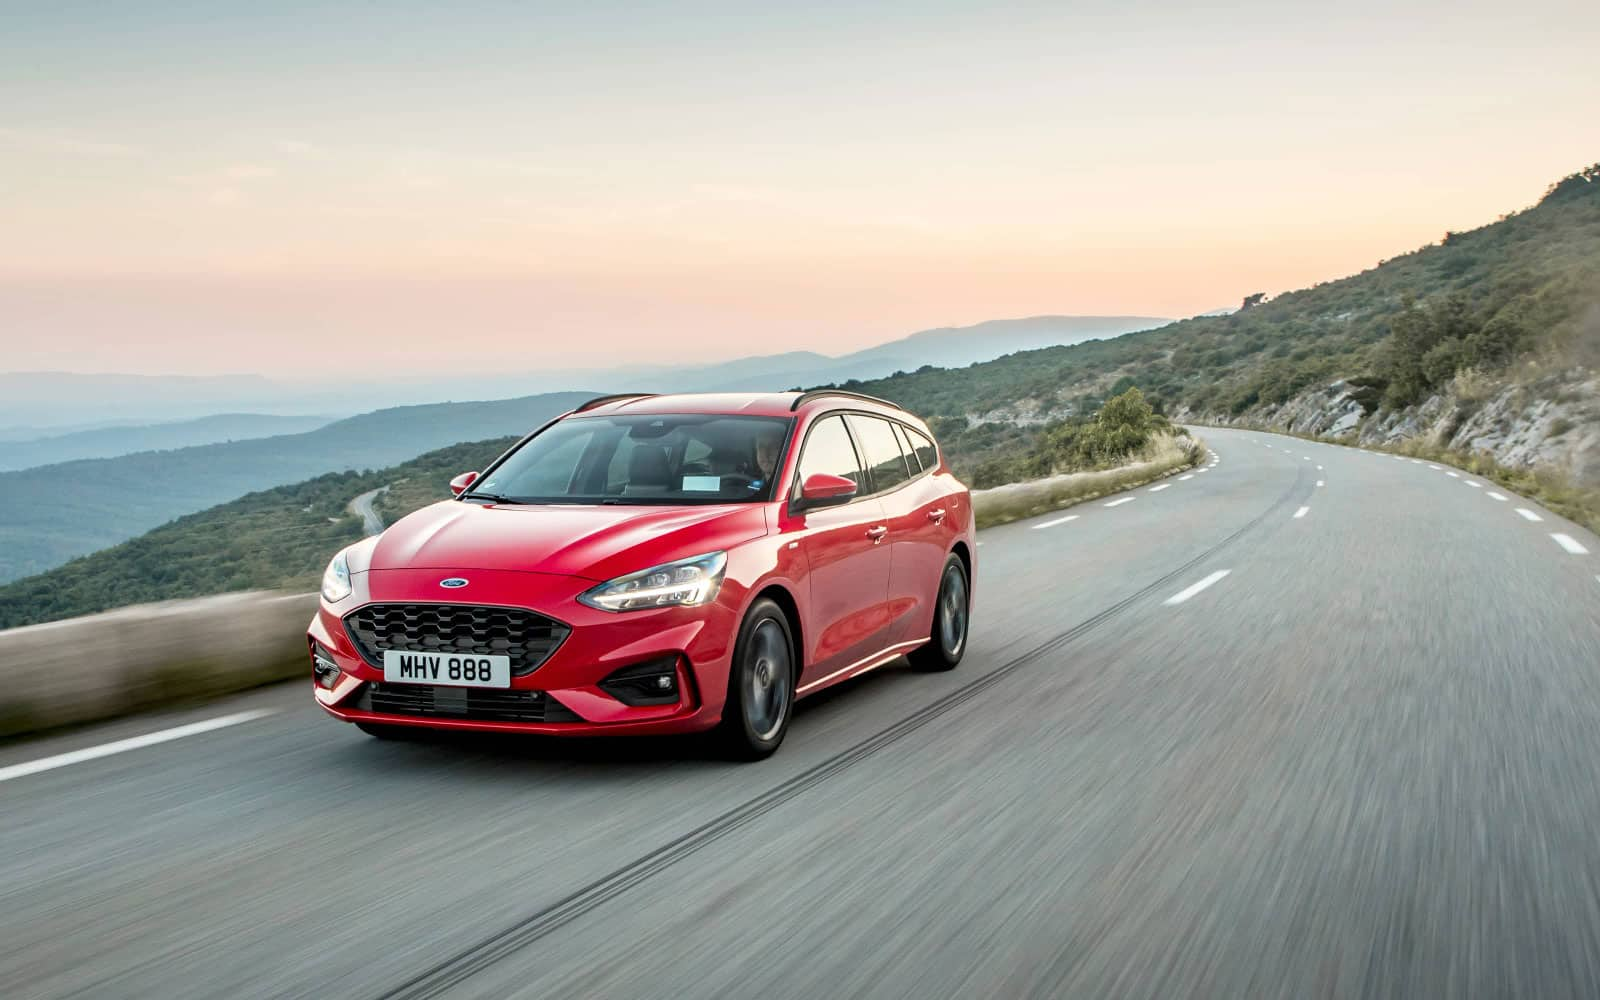 The 2018 Ford Focus Now Available At Arnold Clark